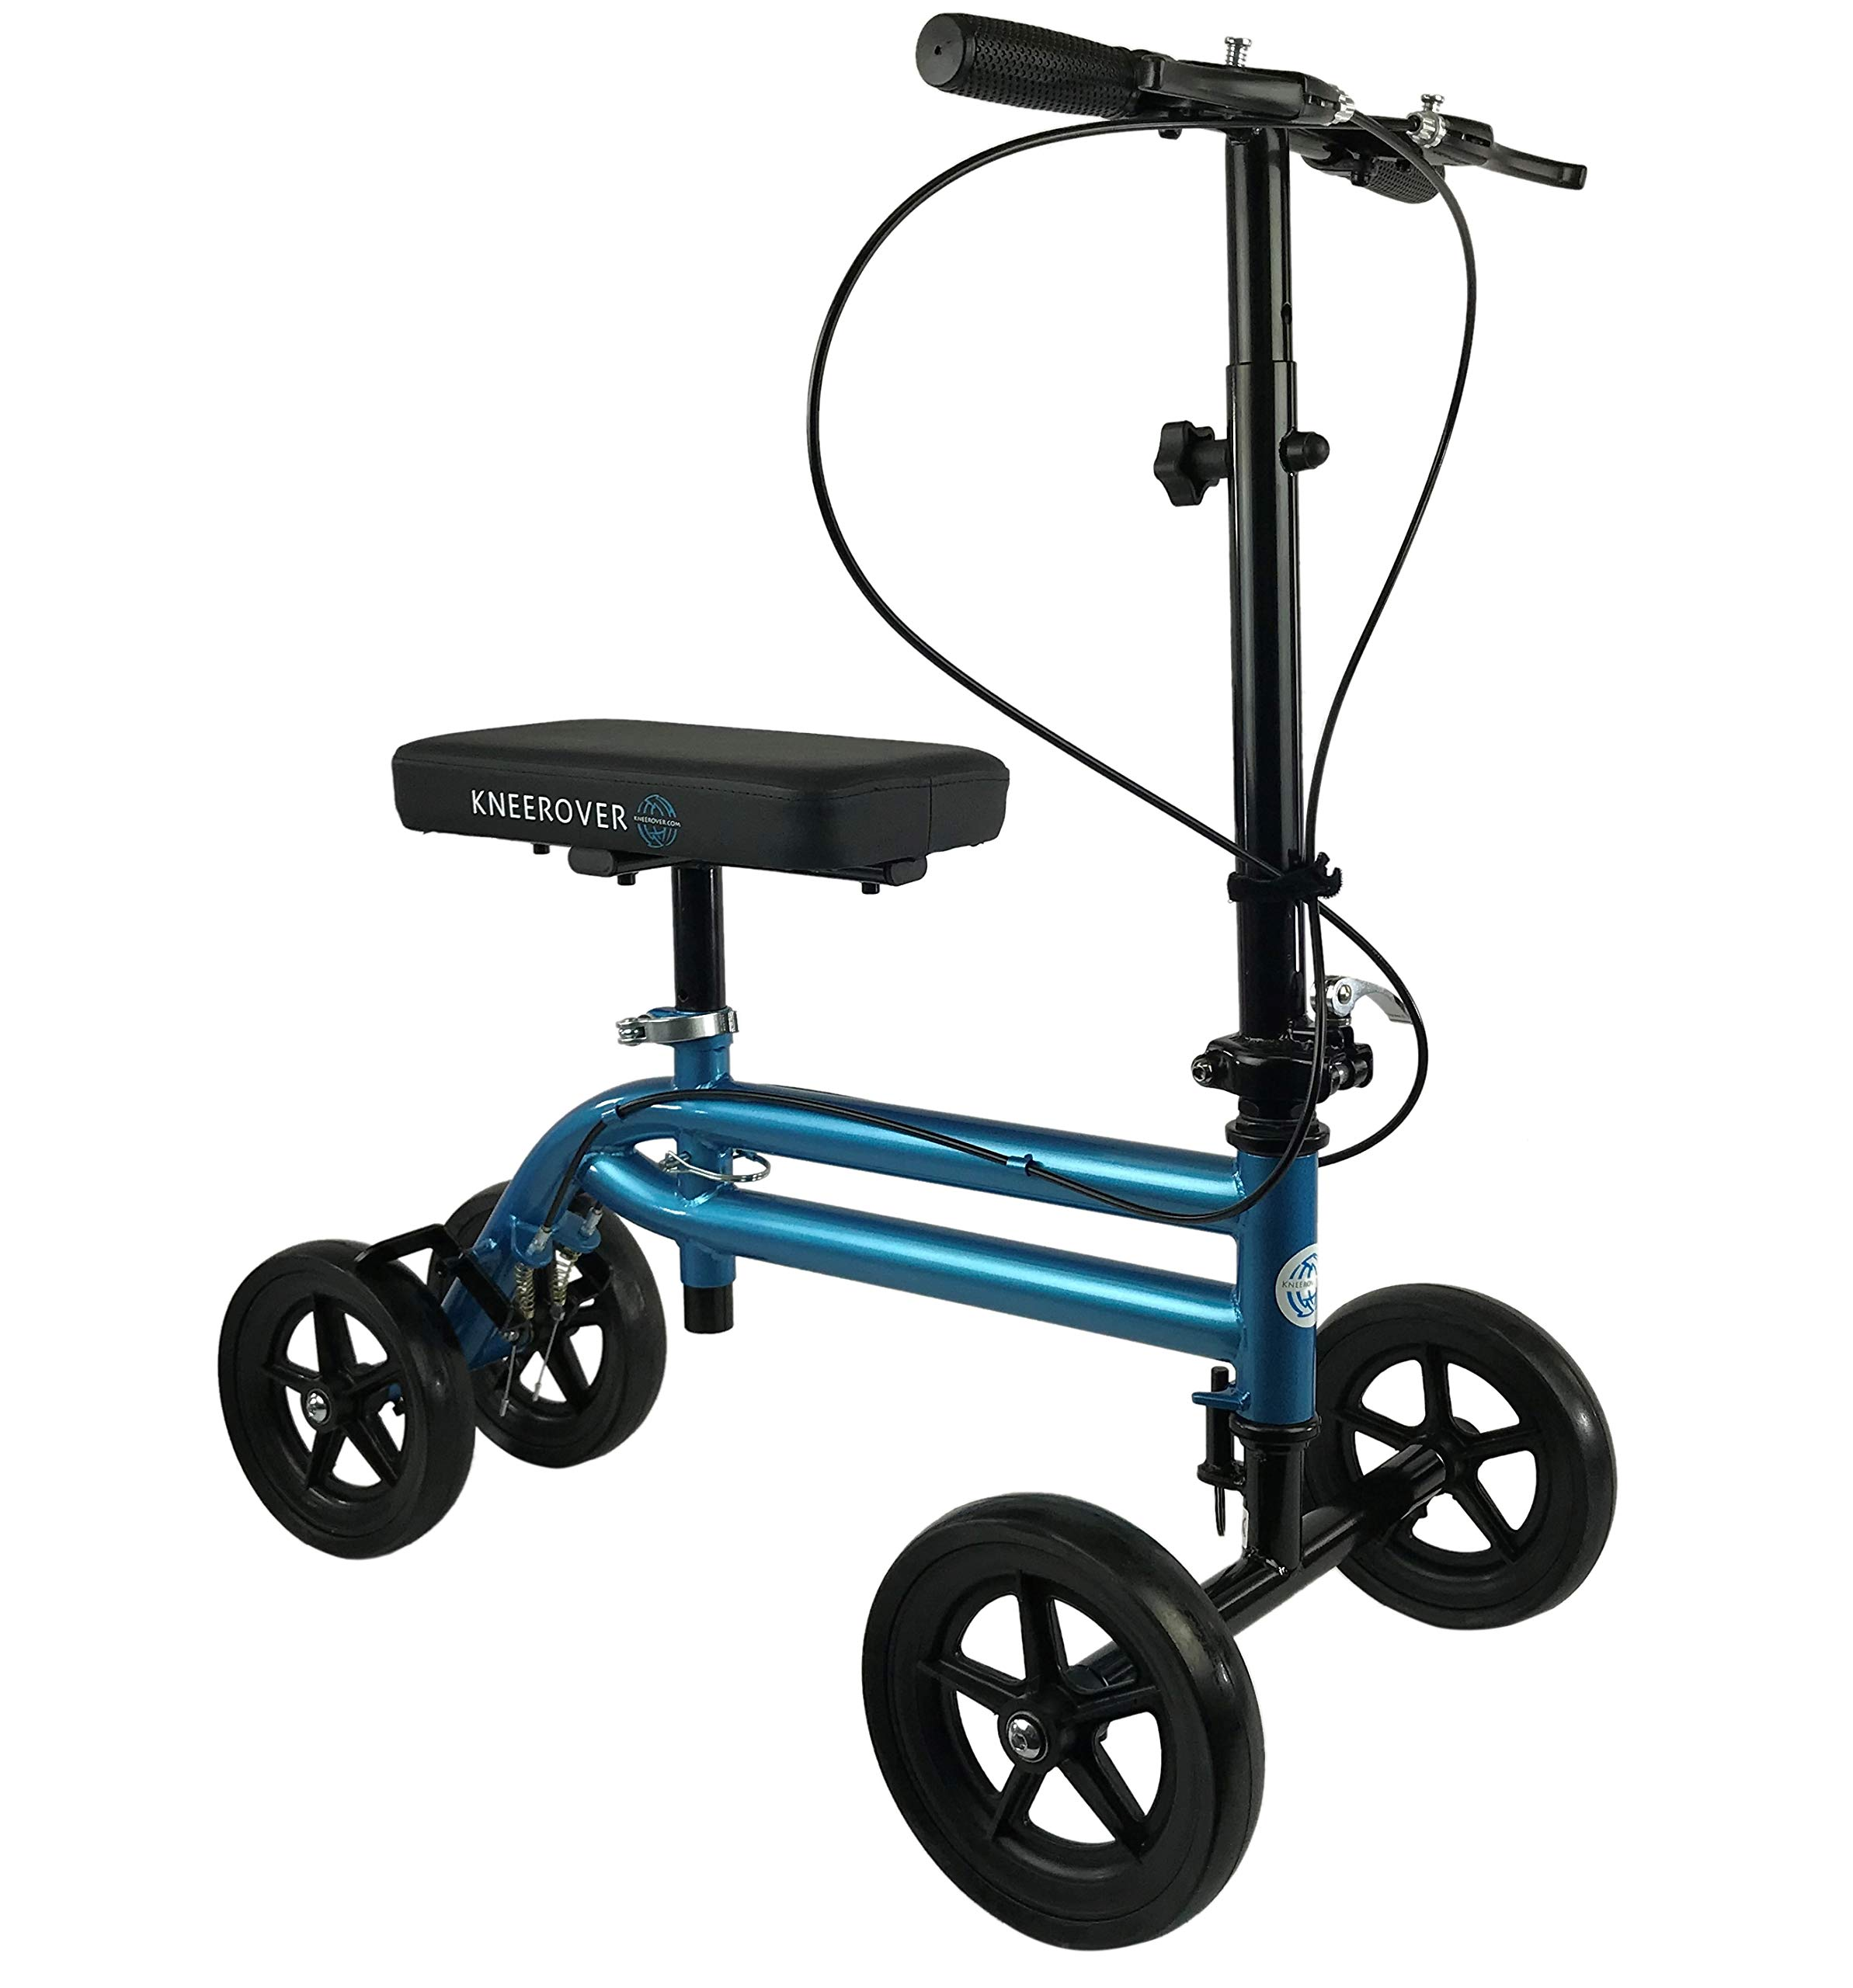 NEW KneeRover Economy Knee Scooter Steerable Knee Walker Crutch Alternative with DUAL BRAKING SYSTEM in Metallic Blue by KneeRover